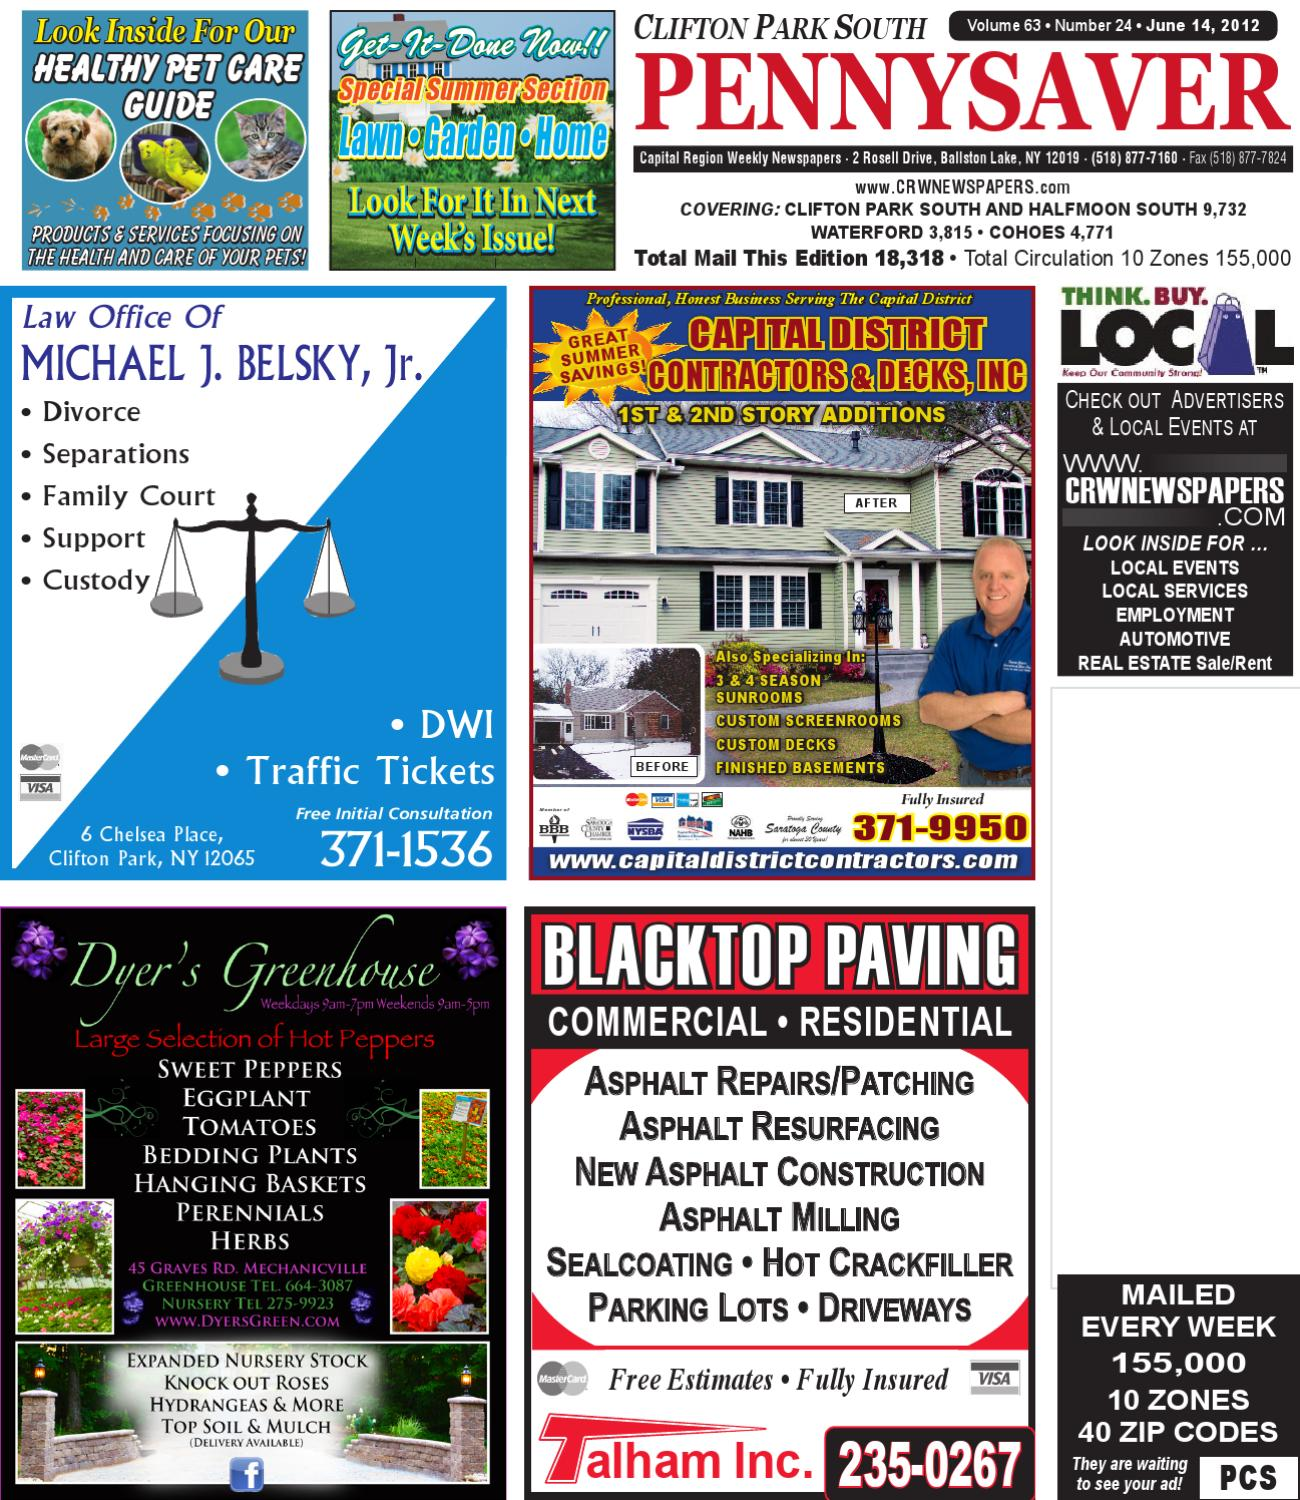 Clifton park south pennysaver 061412 by capital region weekly clifton park south pennysaver 061412 by capital region weekly newspapers issuu fandeluxe Gallery